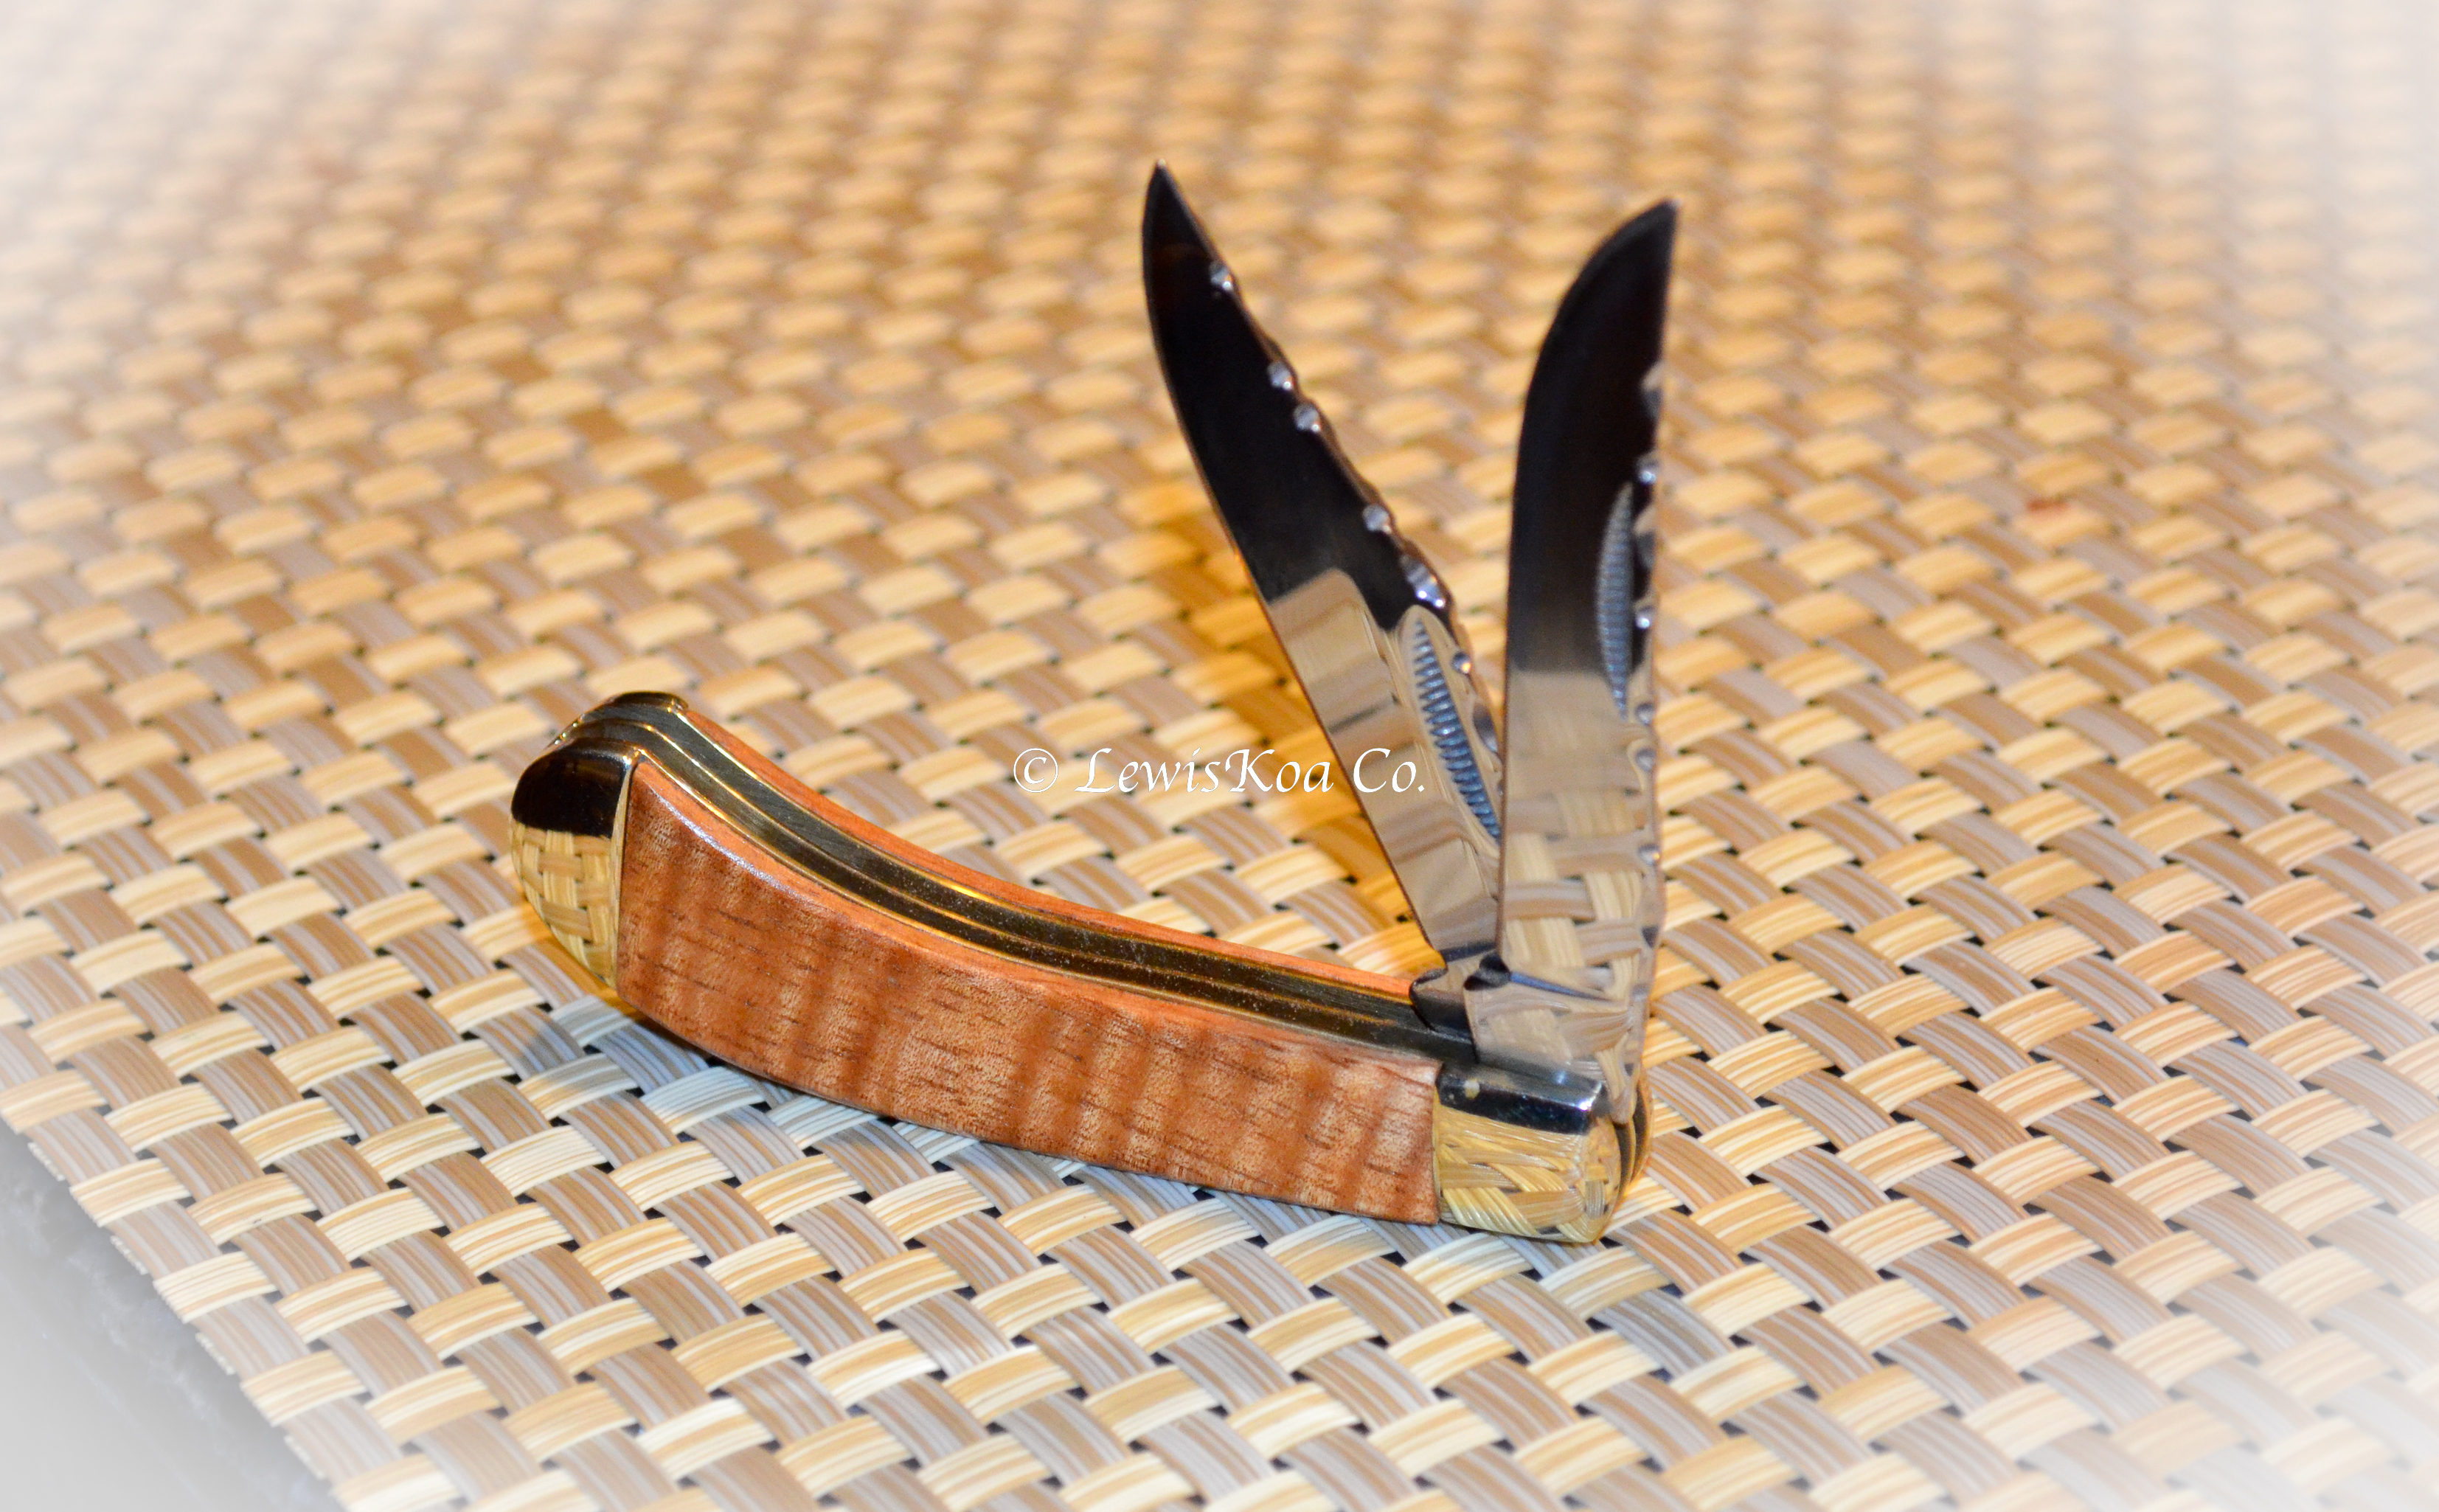 Koa wooden knife